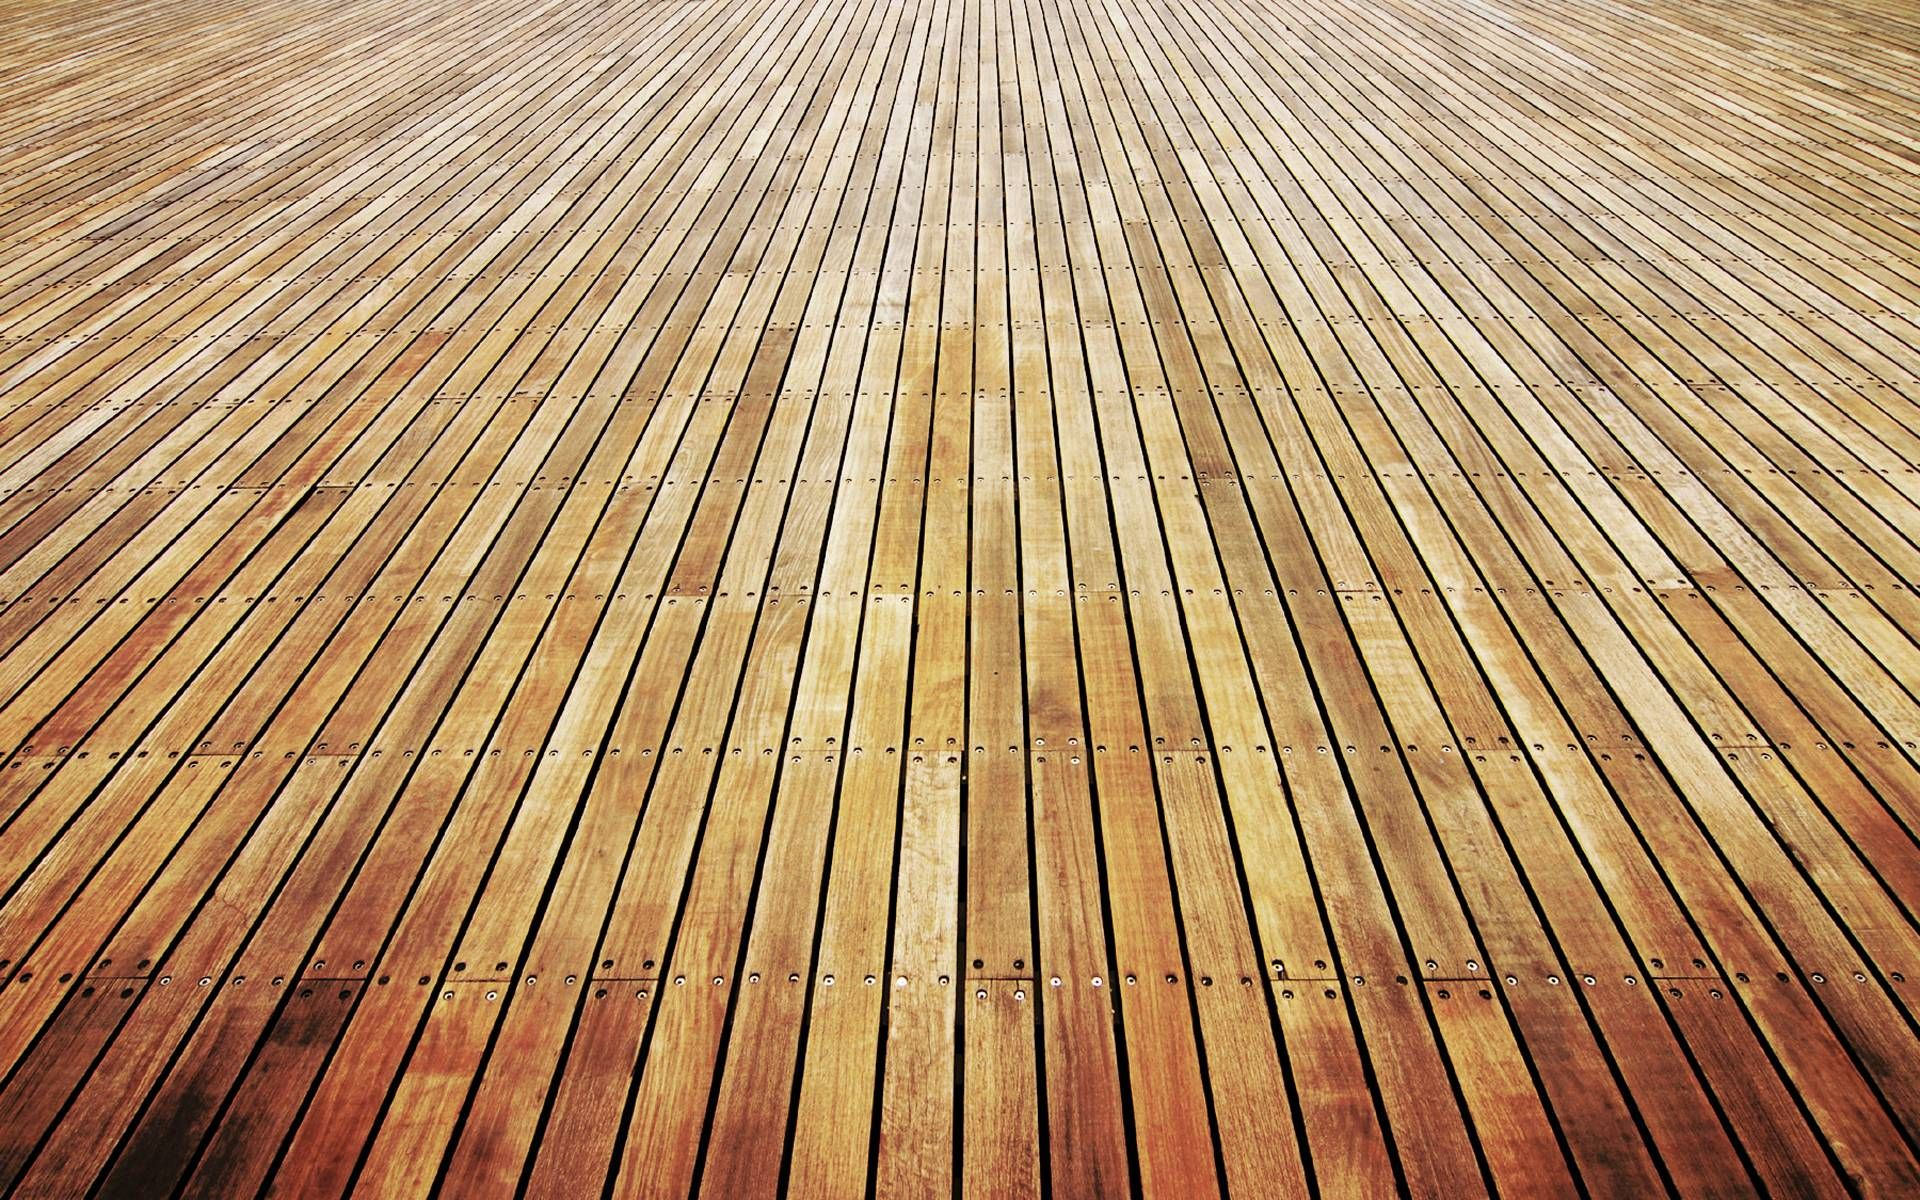 Hd wallpaper wood - Wooden Wallpaper Collection For Free Download